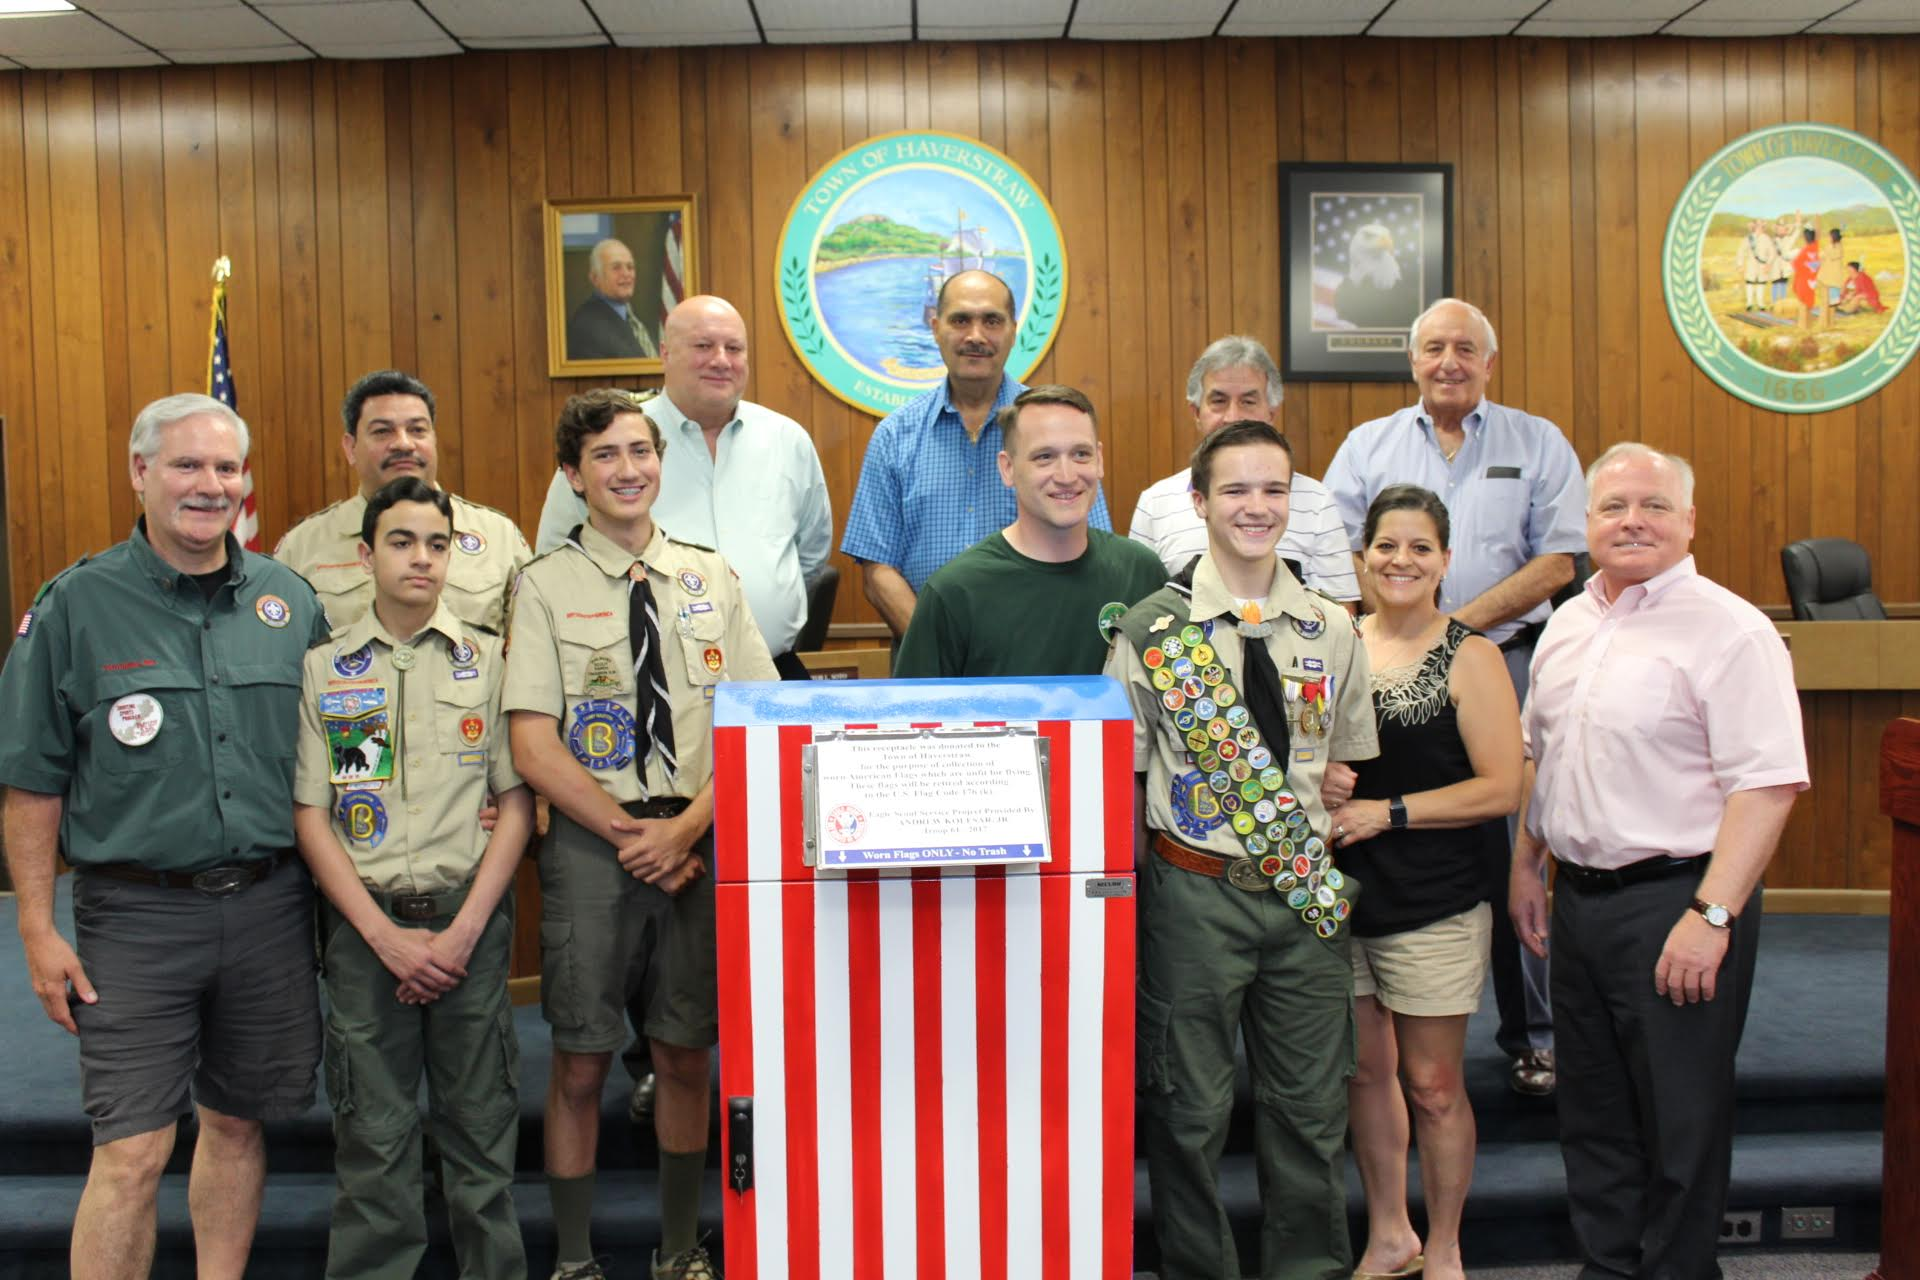 KOLESAR'S EAGLE SCOUT PROJECT ANNOUNCED AT HAVERSTRAW BOARD MEETING